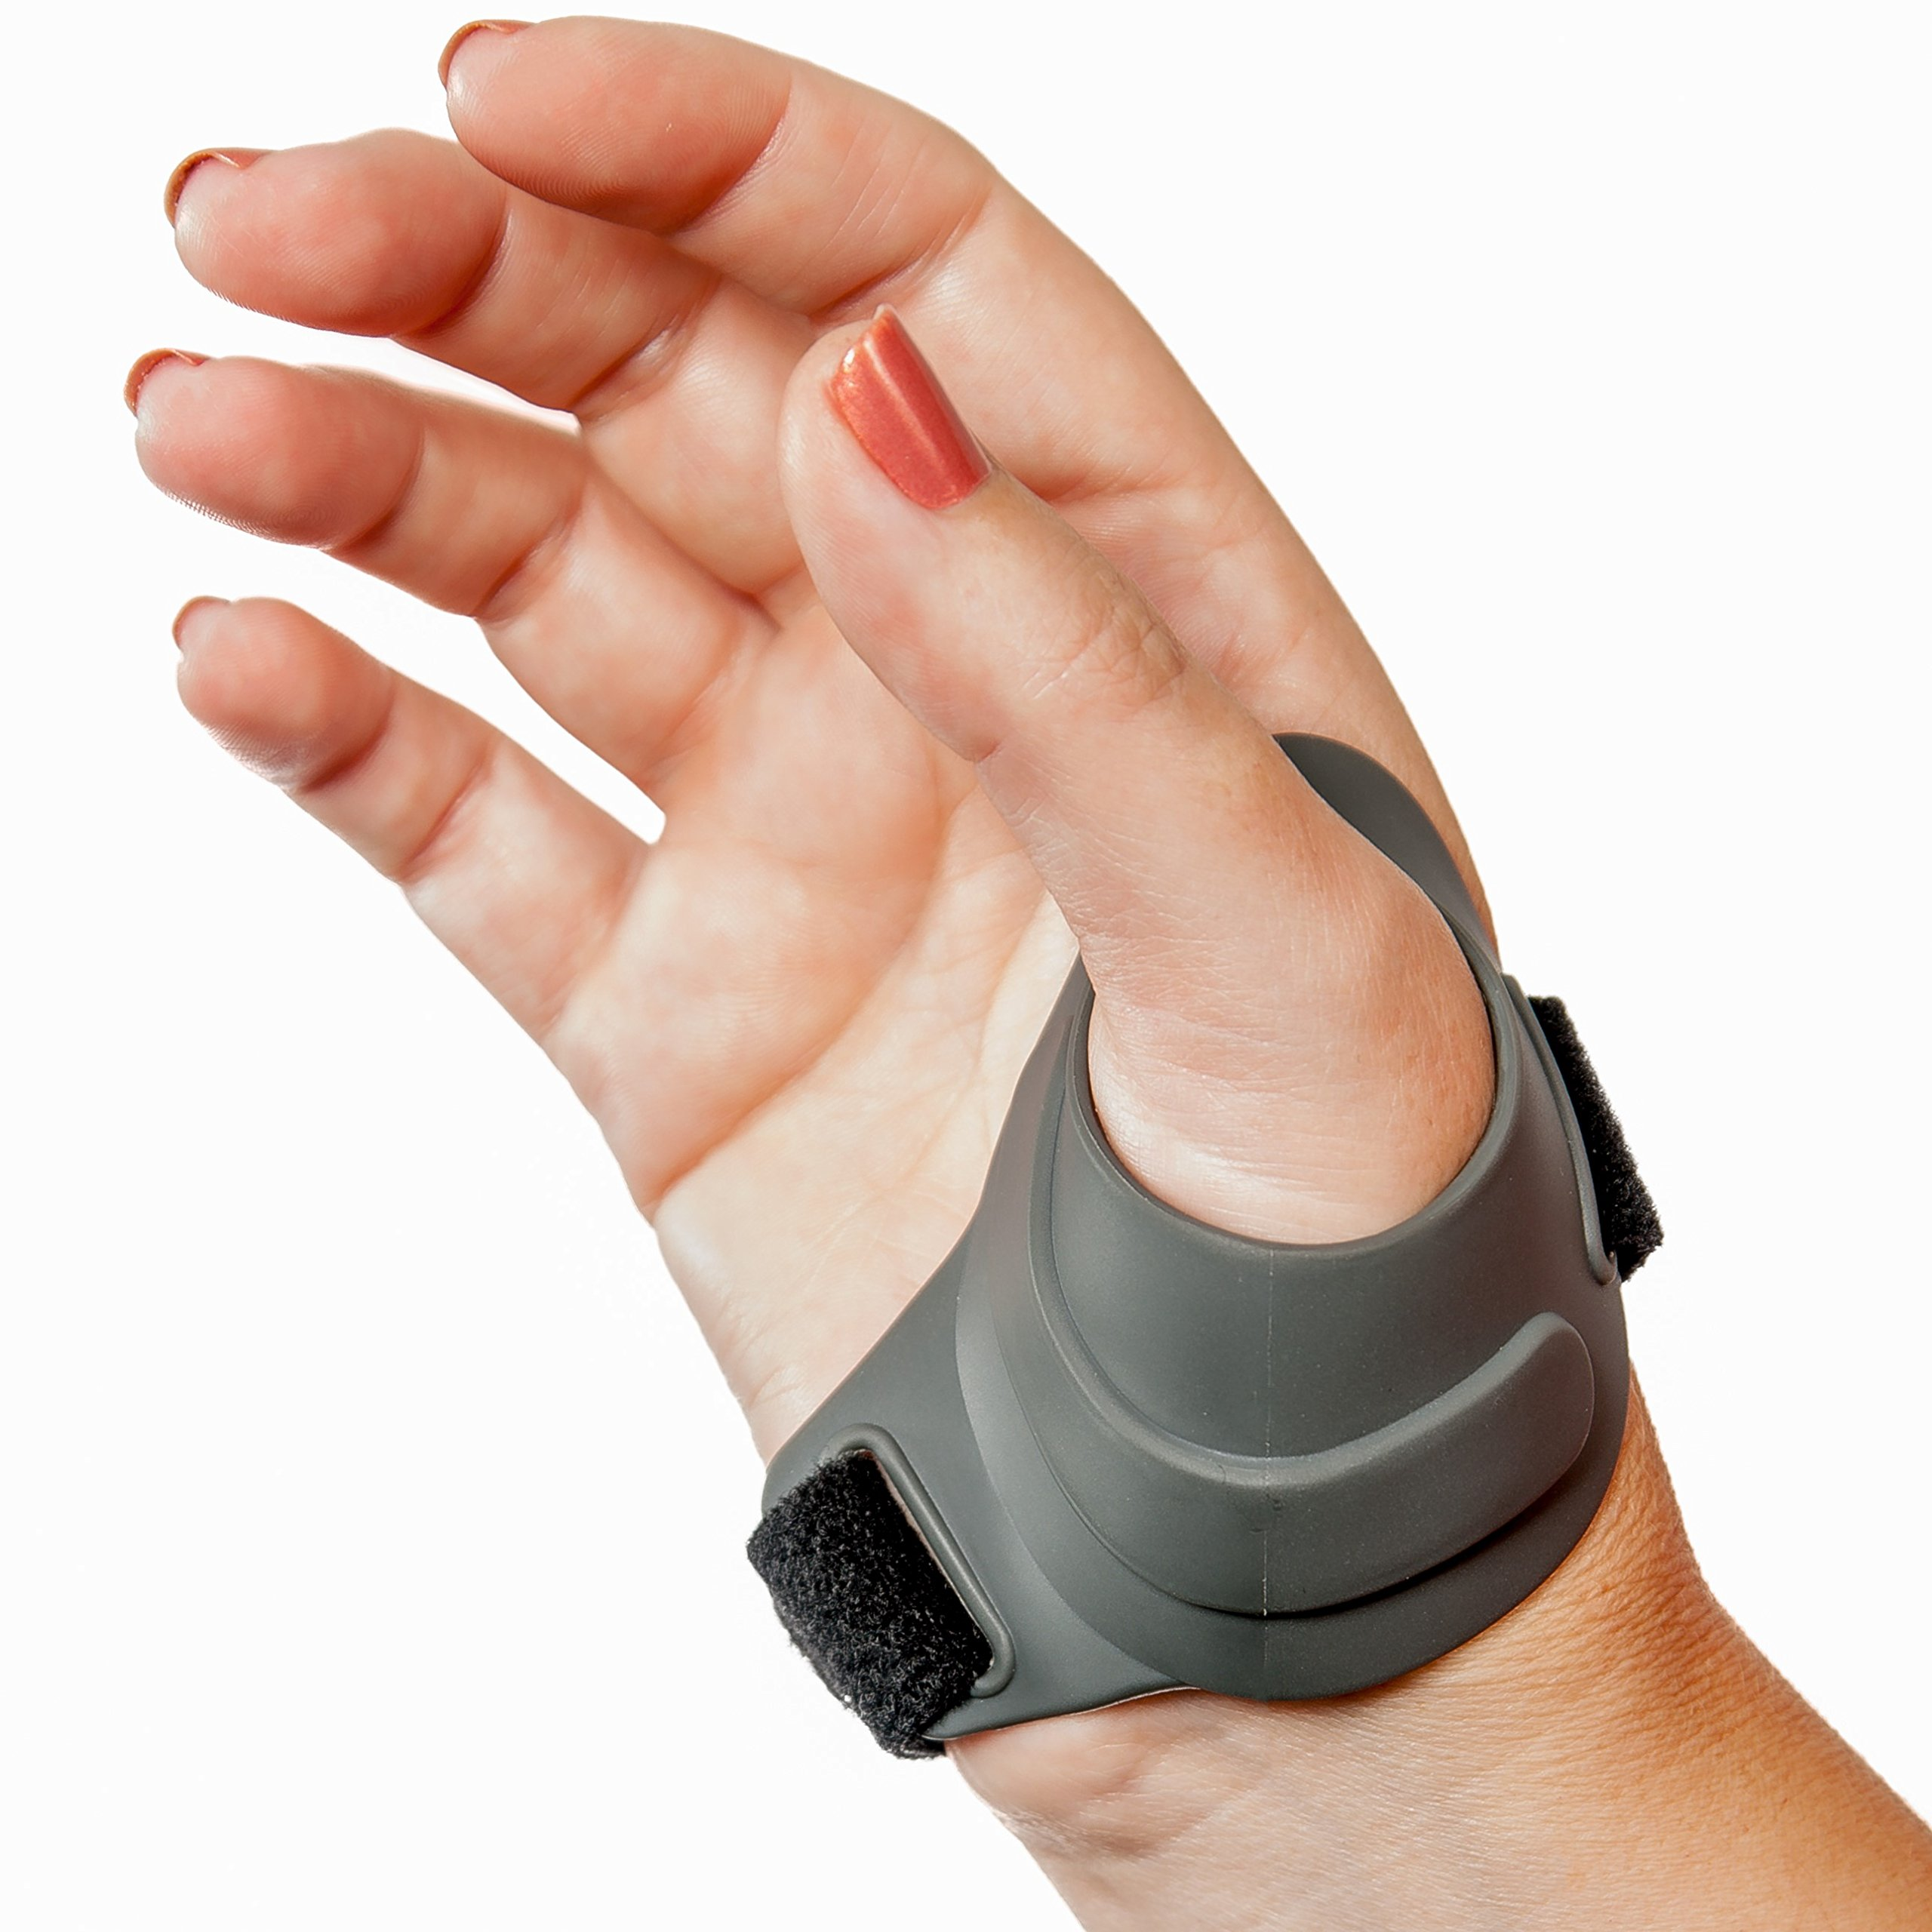 CMCcare Thumb Brace - Durable, Waterproof Brace for Thumb Arthritis Pain Relief, Left Hand, Size Large